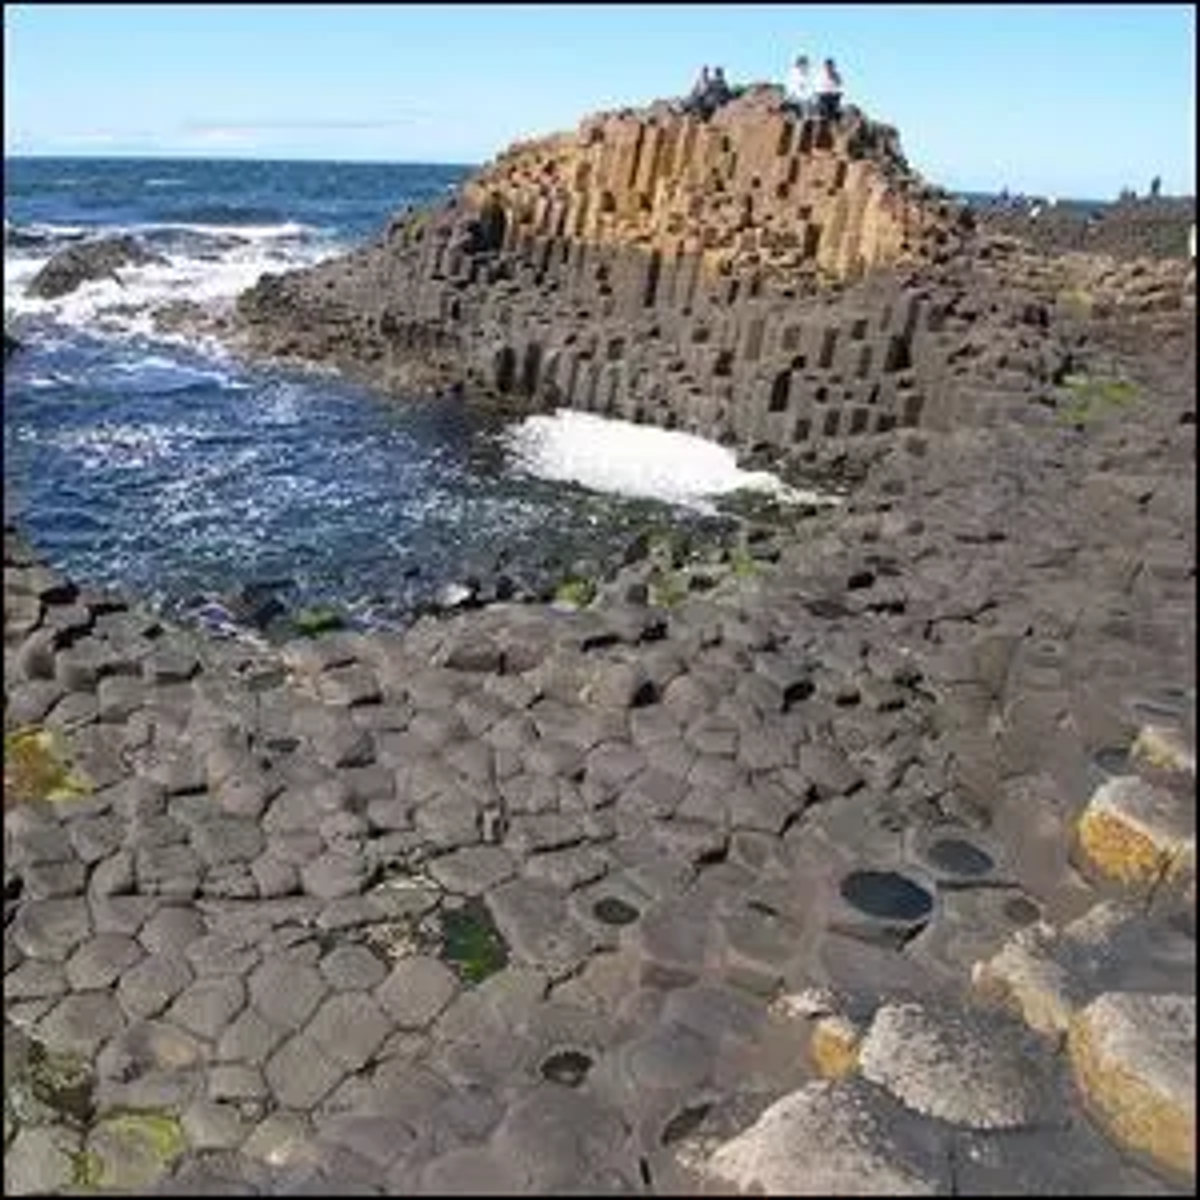 Photo of the Giant's Causeway, County Antrim, Northern Ireland.